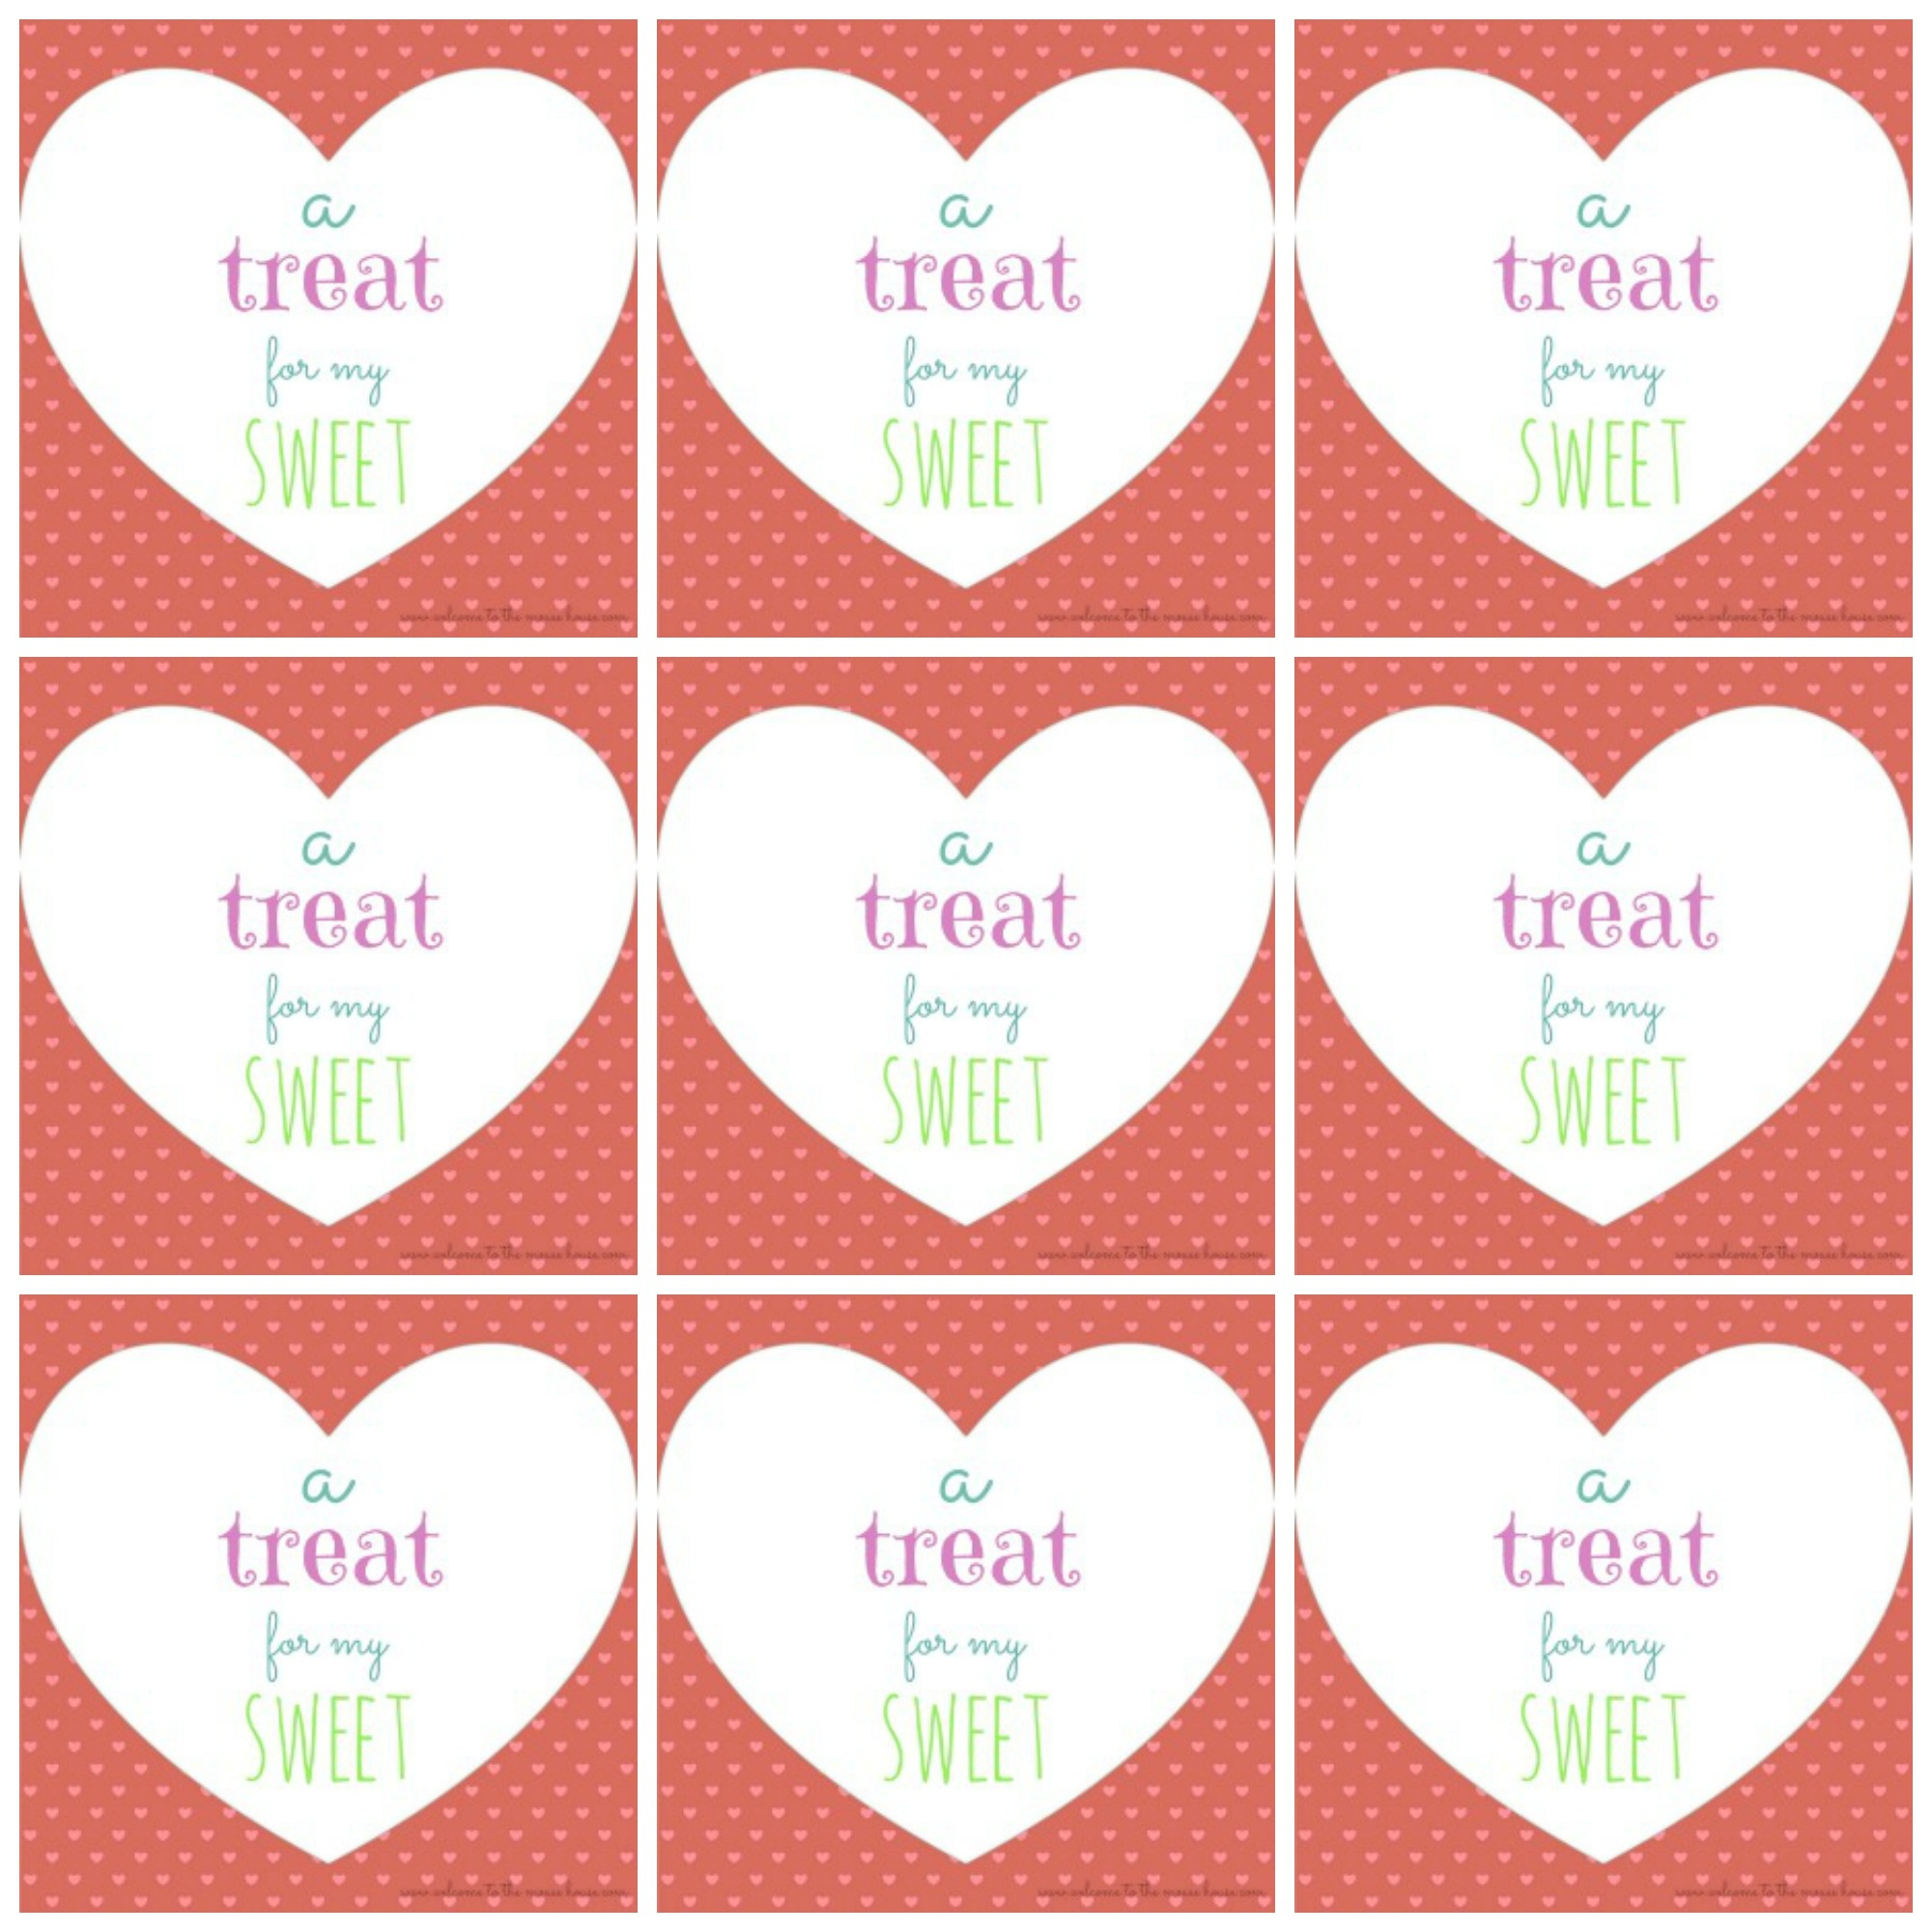 Free Printable Valentine's Day Tags - Free Printable Valentines Day Tags